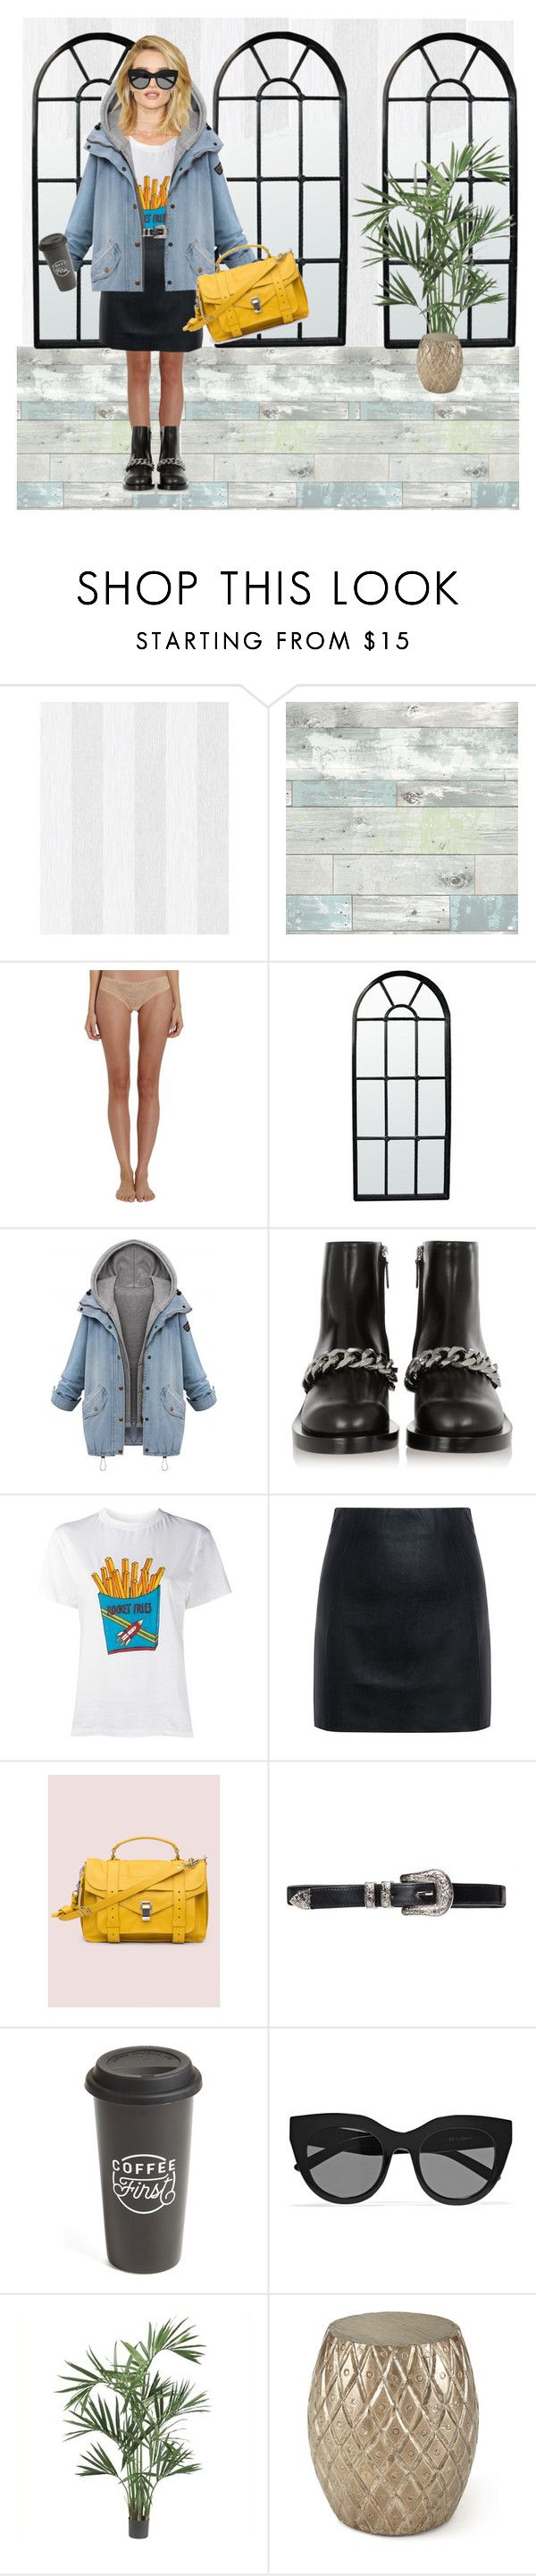 """""""#helloyehw"""" by sascha-haarup on Polyvore featuring Wall Pops!, Cosabella, Noir, Givenchy, Ganni, McQ by Alexander McQueen, Proenza Schouler, The Created Co., Le Specs and Nearly Natural"""